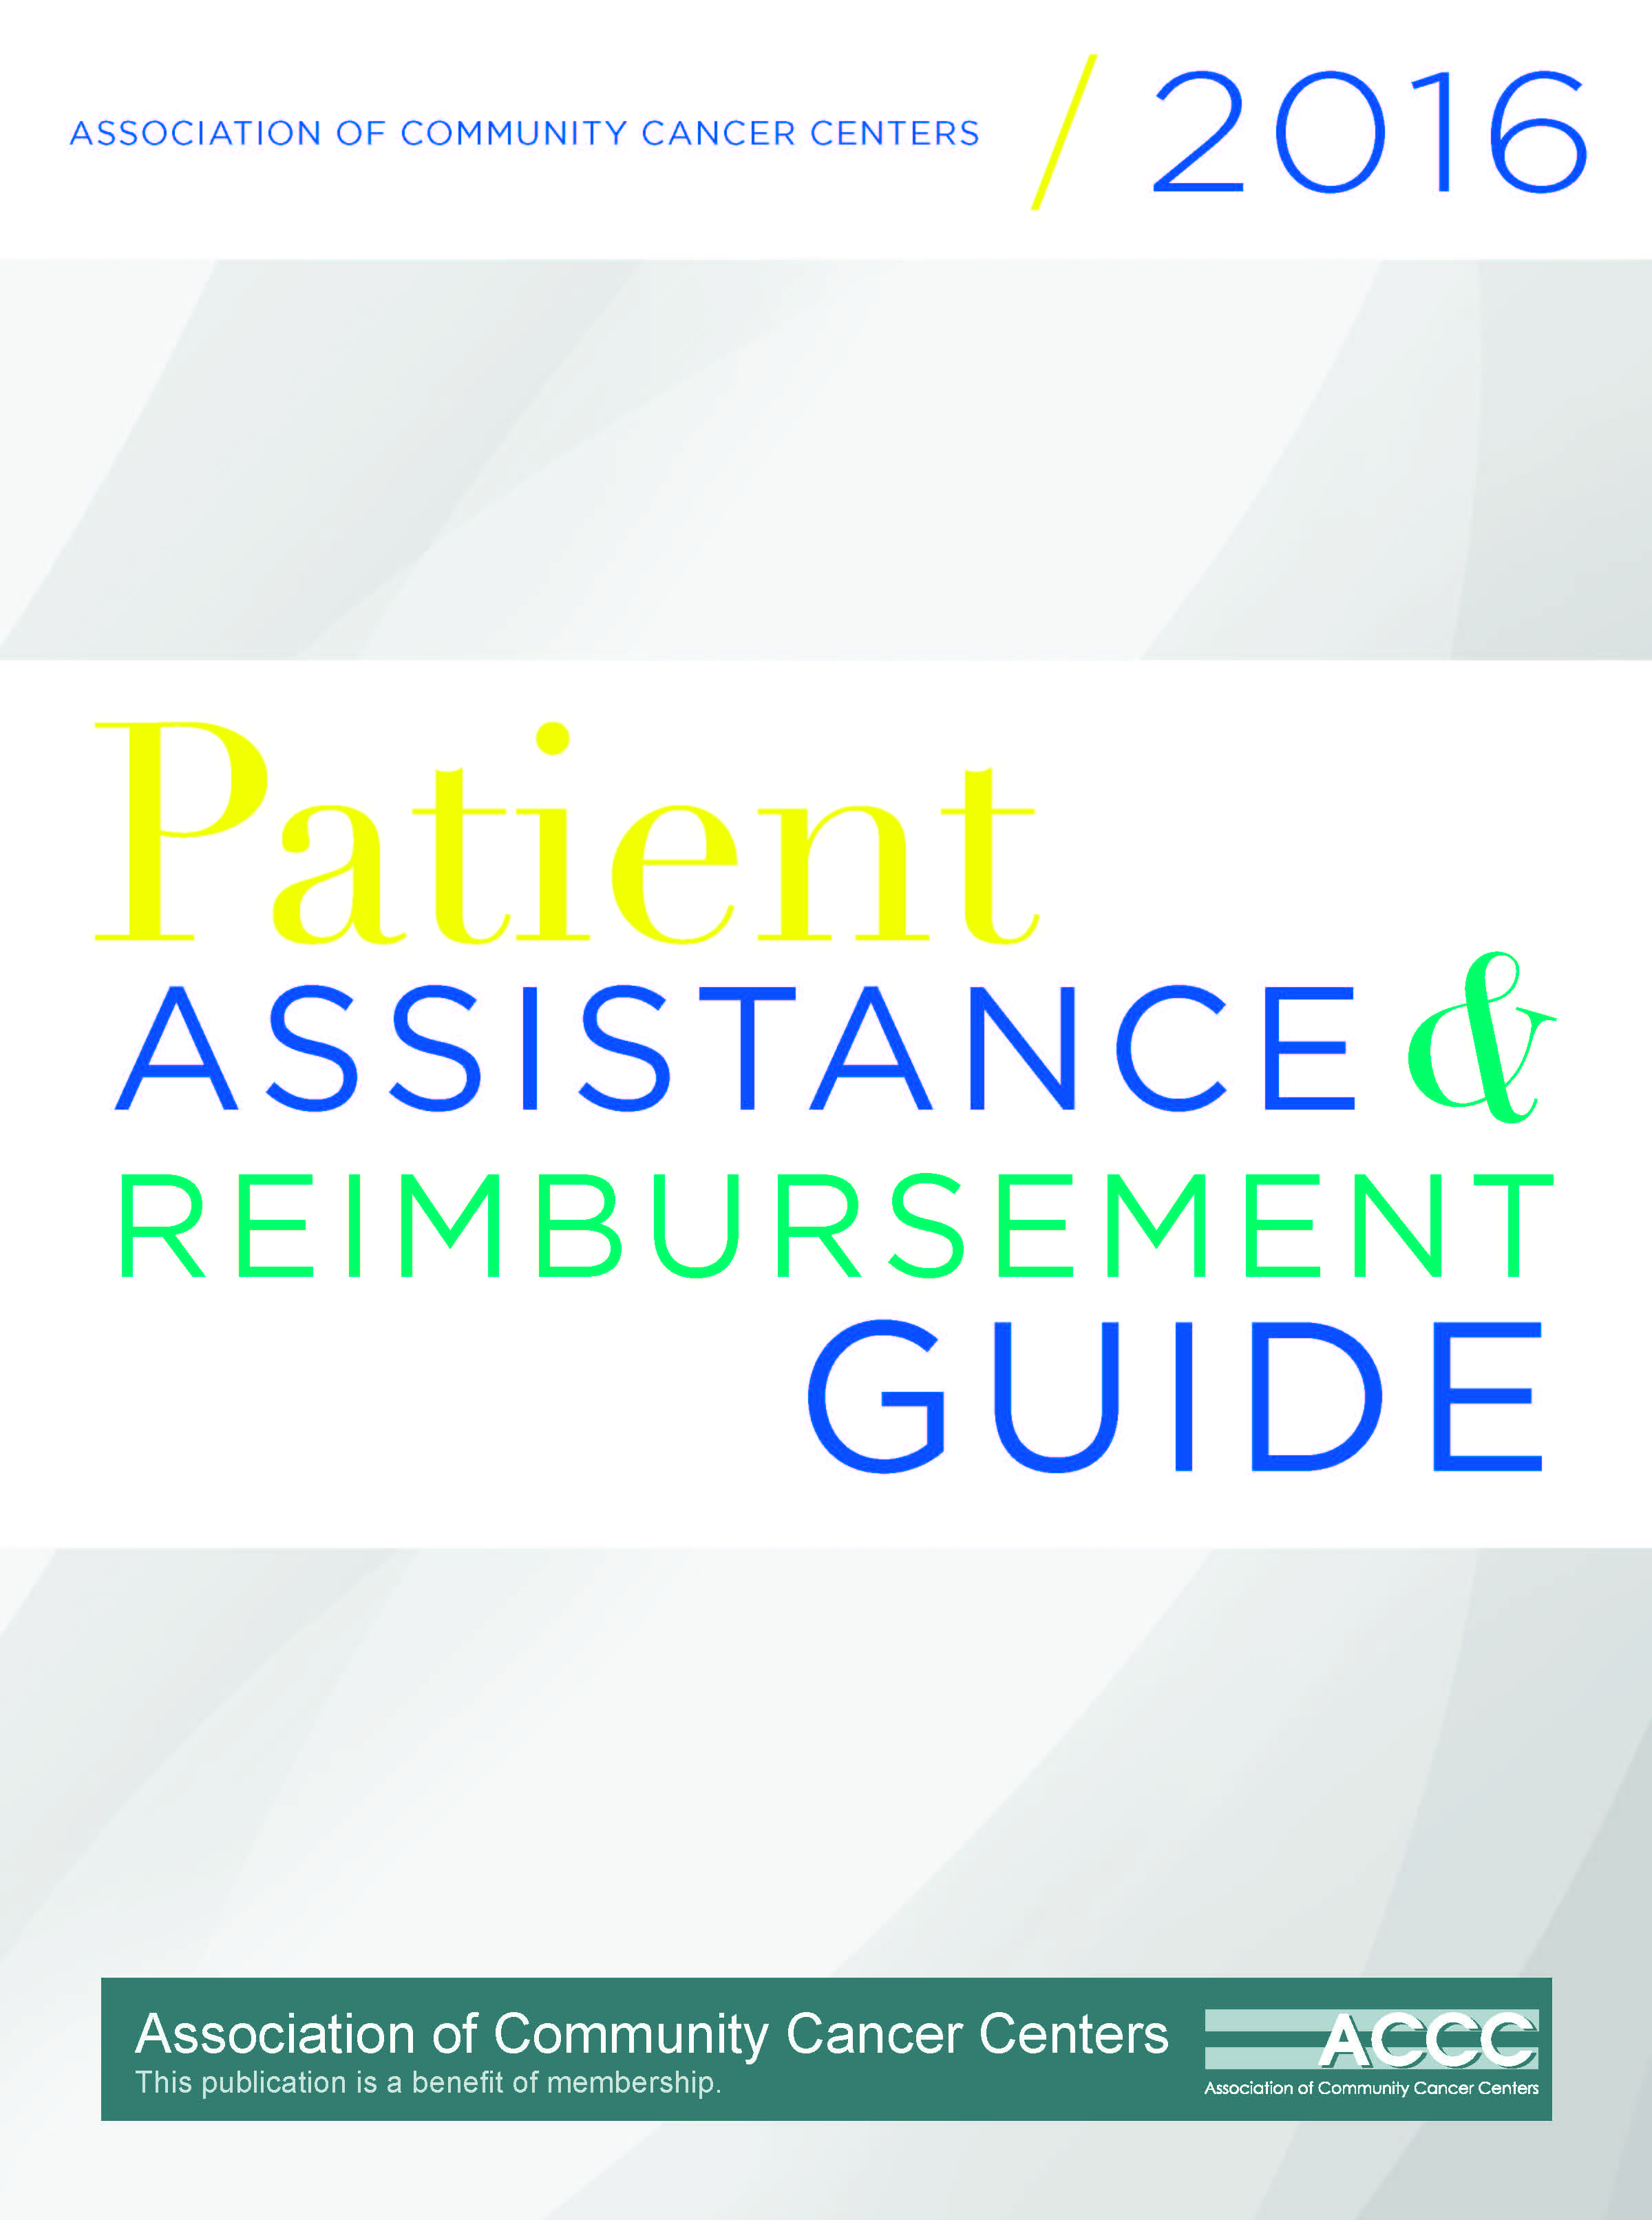 2016 Patient Assistance And Reimbursement Guide Oncology Nursing